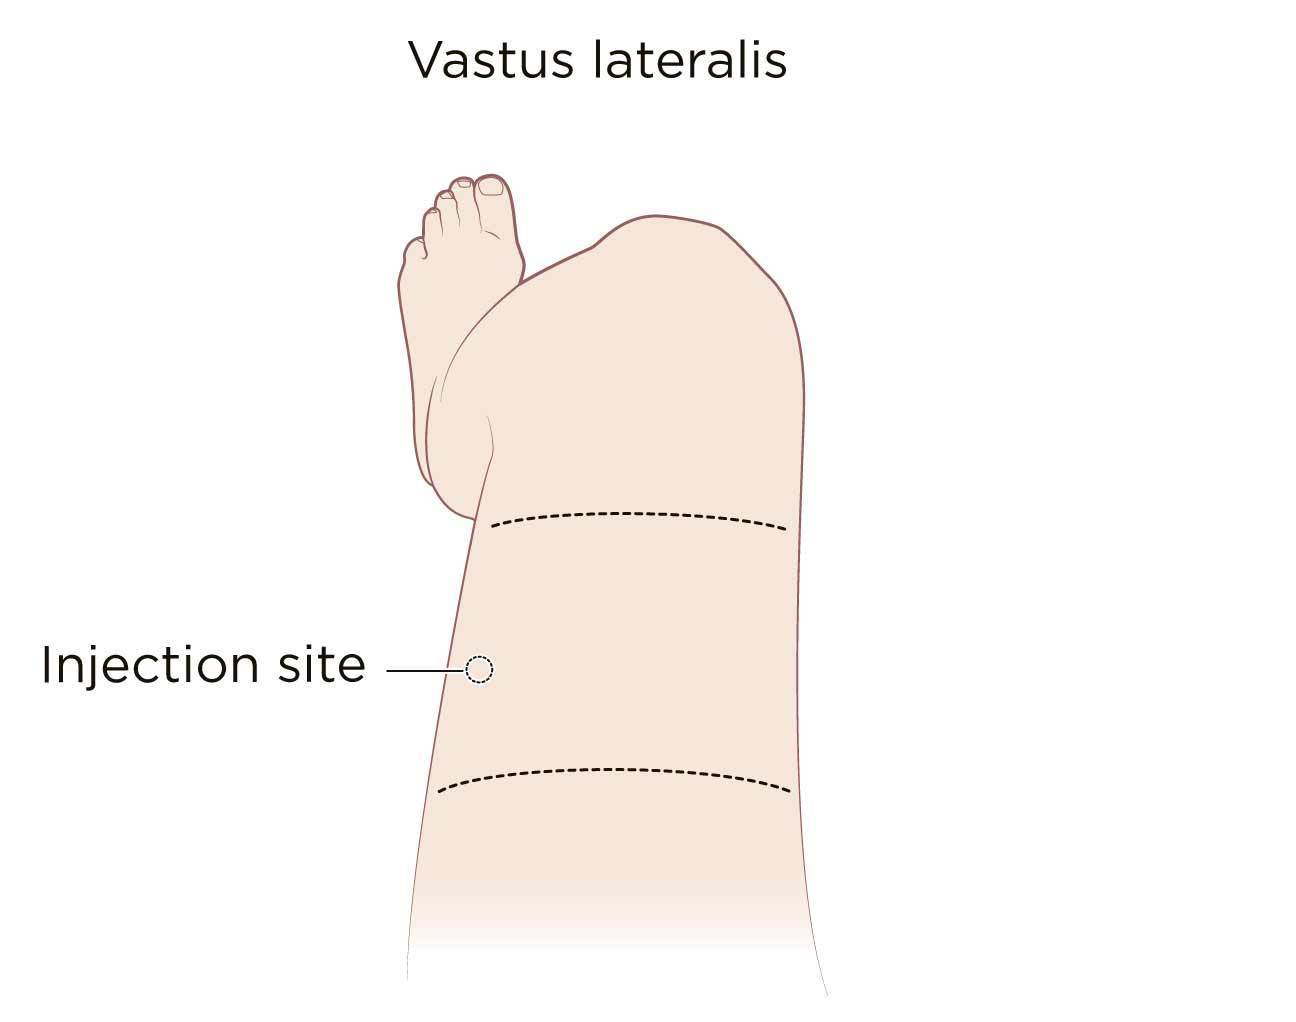 Vastus lateralis muscle of the thigh